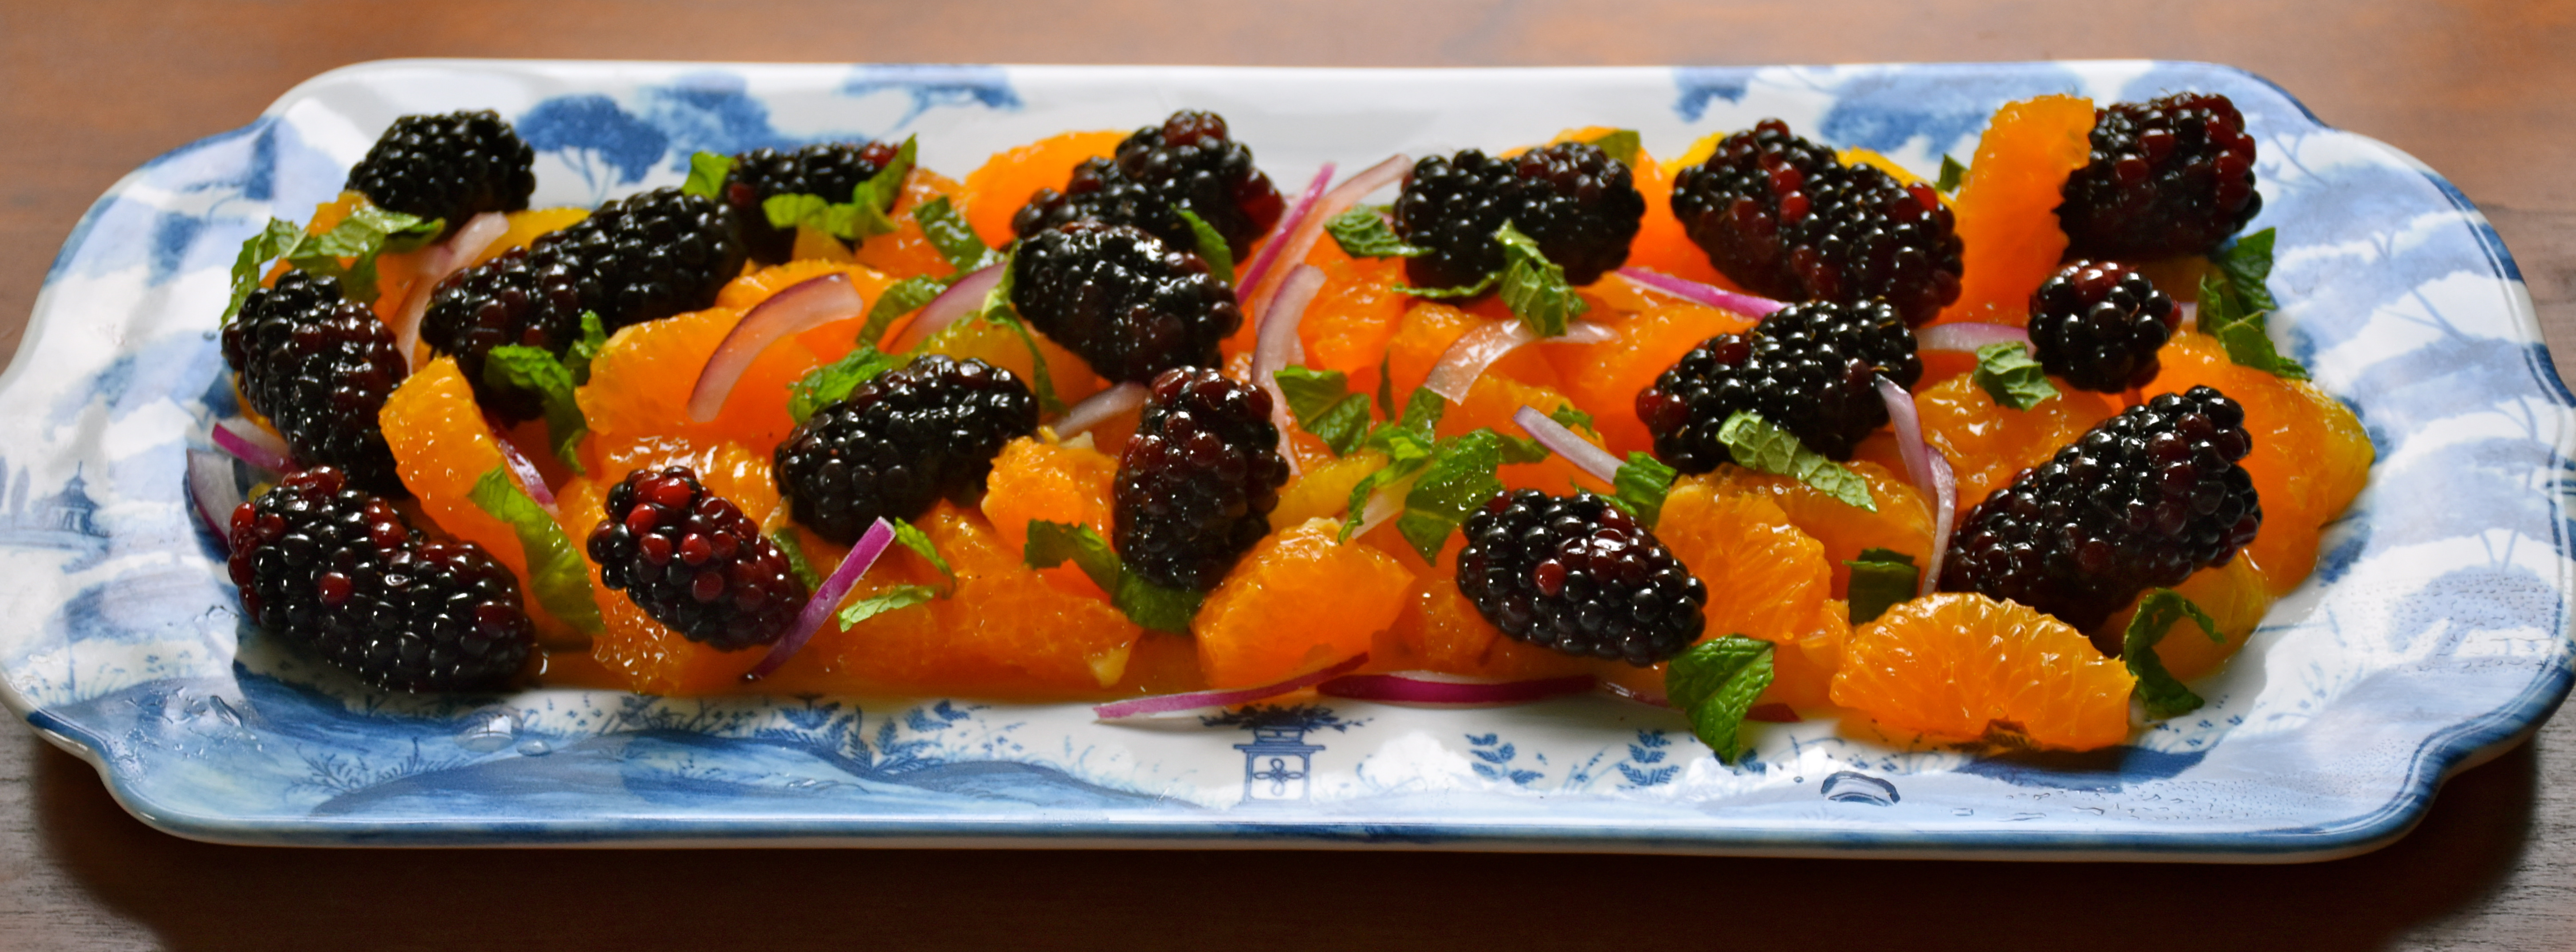 Wish i could find or buy bittersweet branches in our area don t - The Flavor Combination Of These Fruits Are So Delicious That This Definitely Not Your Average Fruit Salad It S A Brunch Worthy Recipe That I Know I Will Be